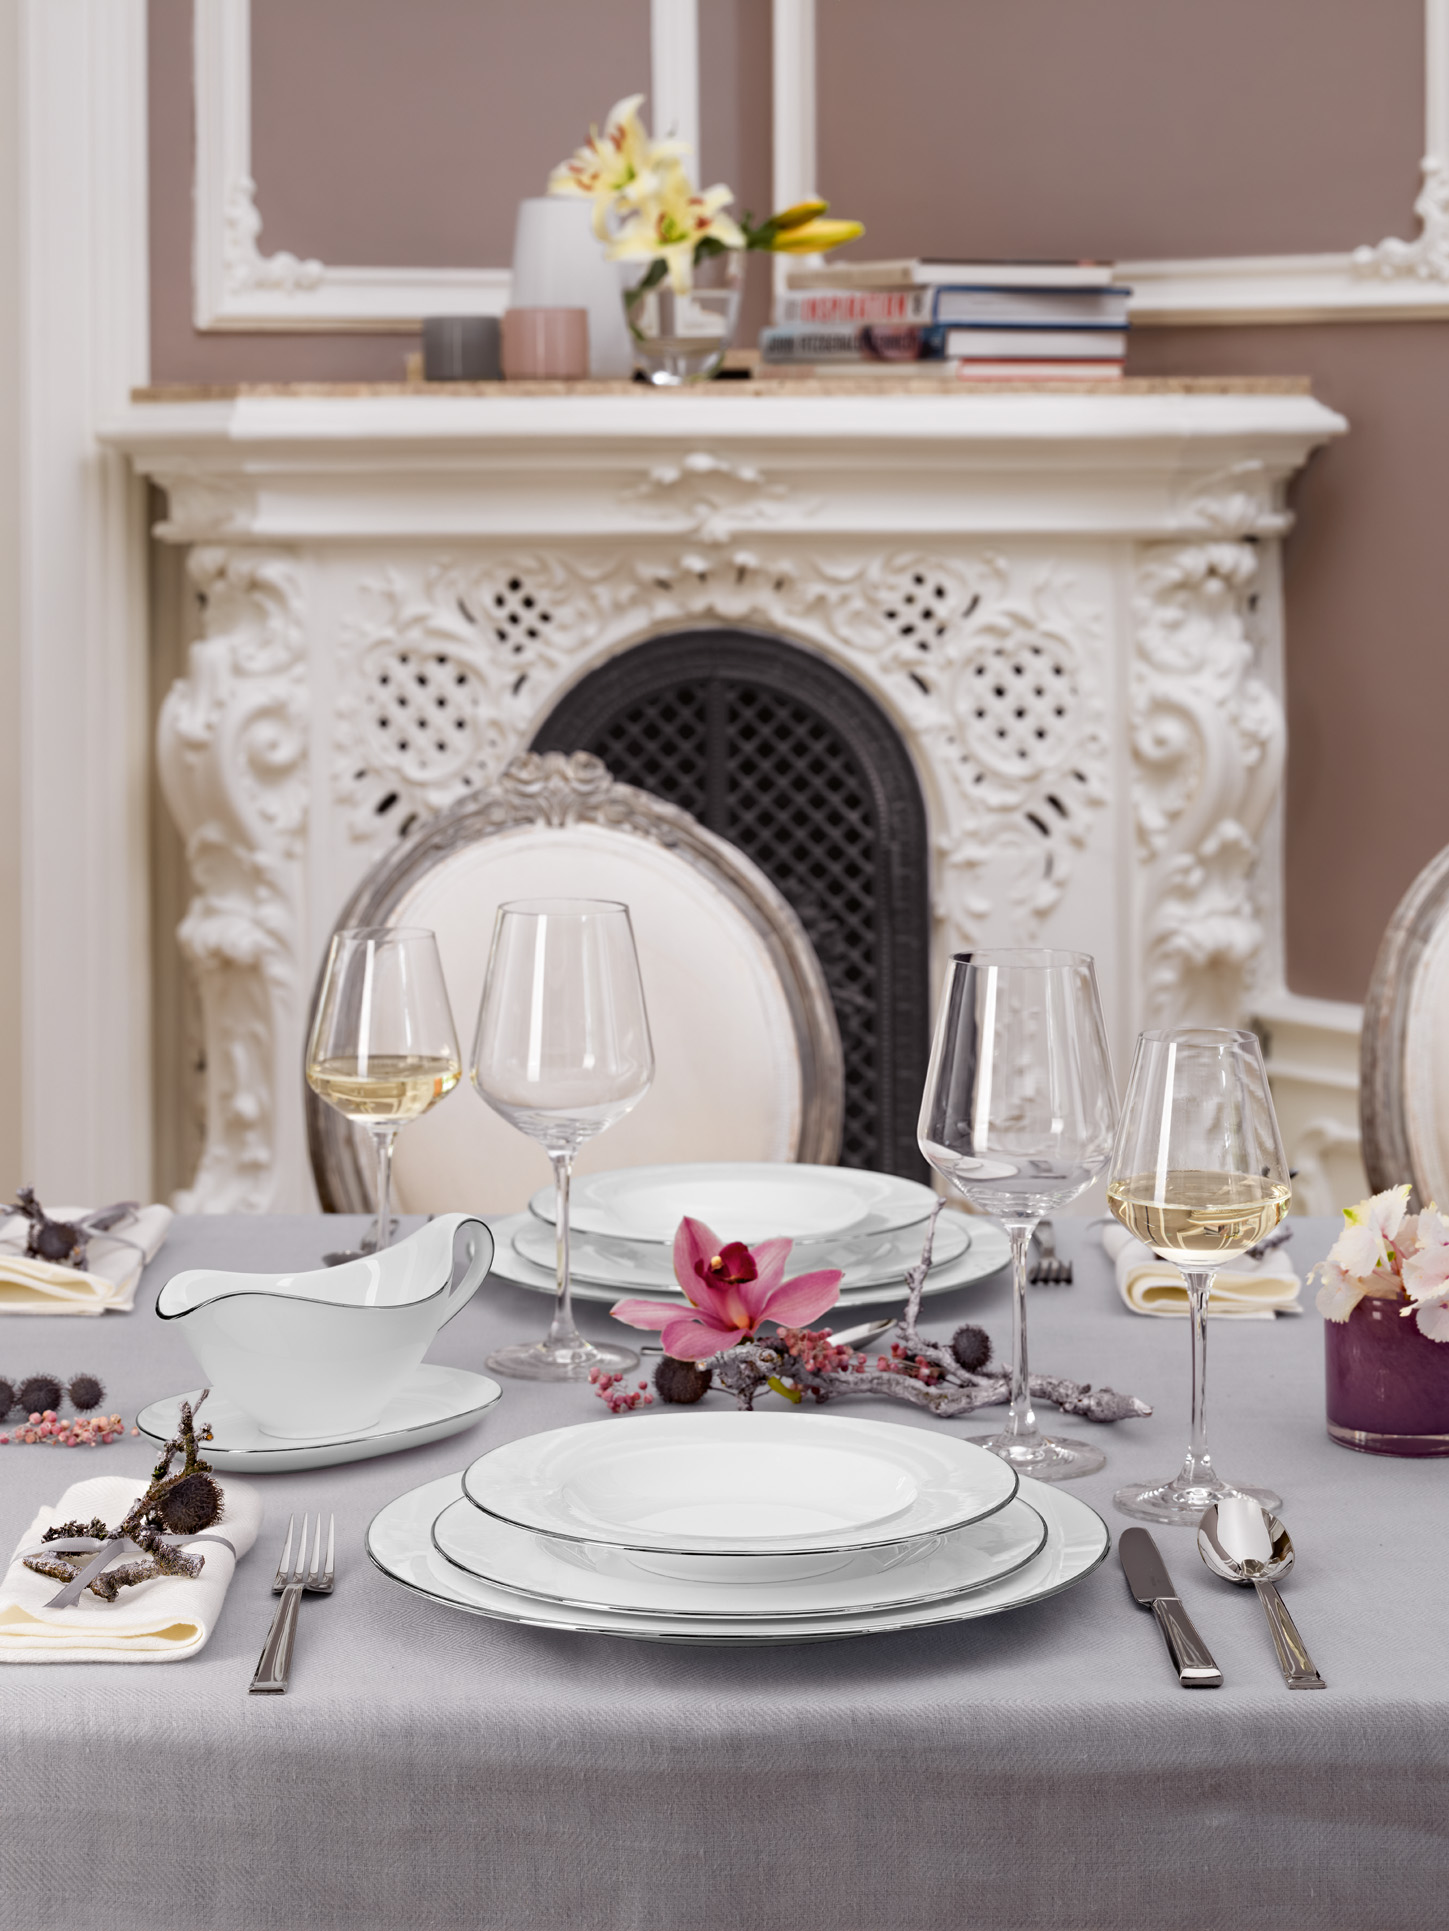 4 Romantic Tablescapes for Valentine's Day